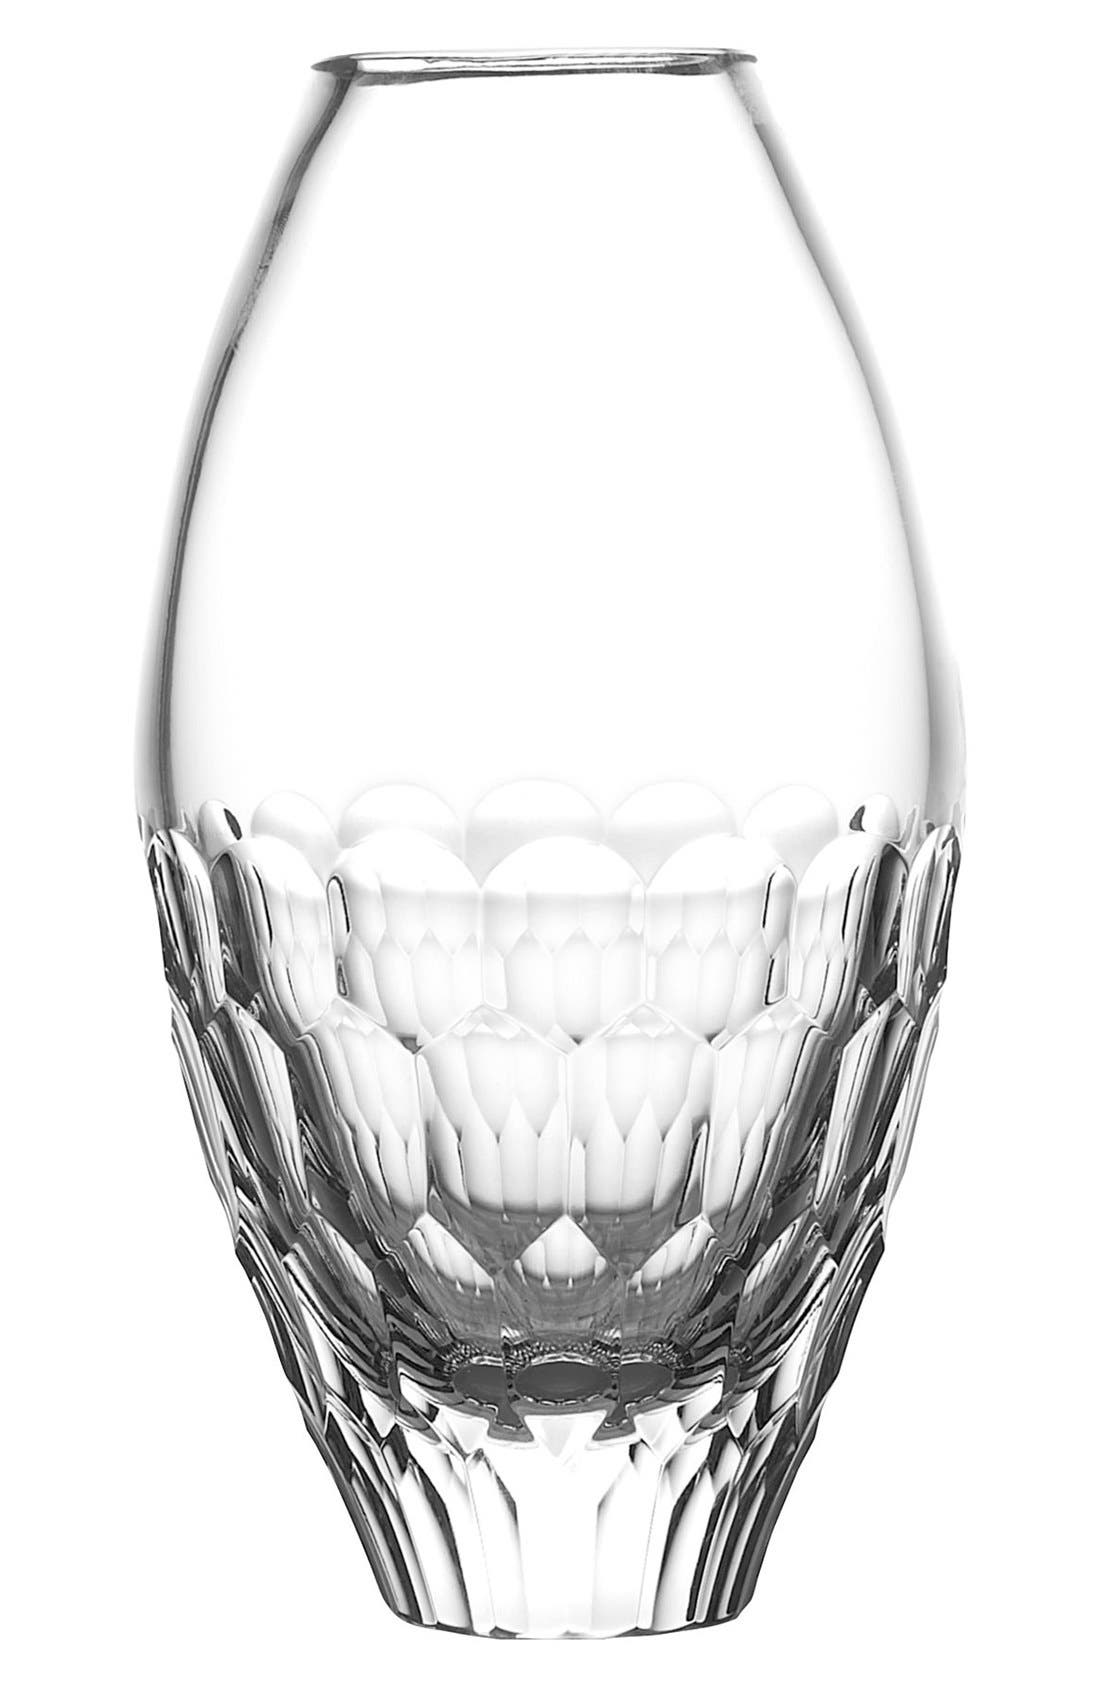 Monique Lhuillier Waterford 'Atelier' Lead Crystal Vase